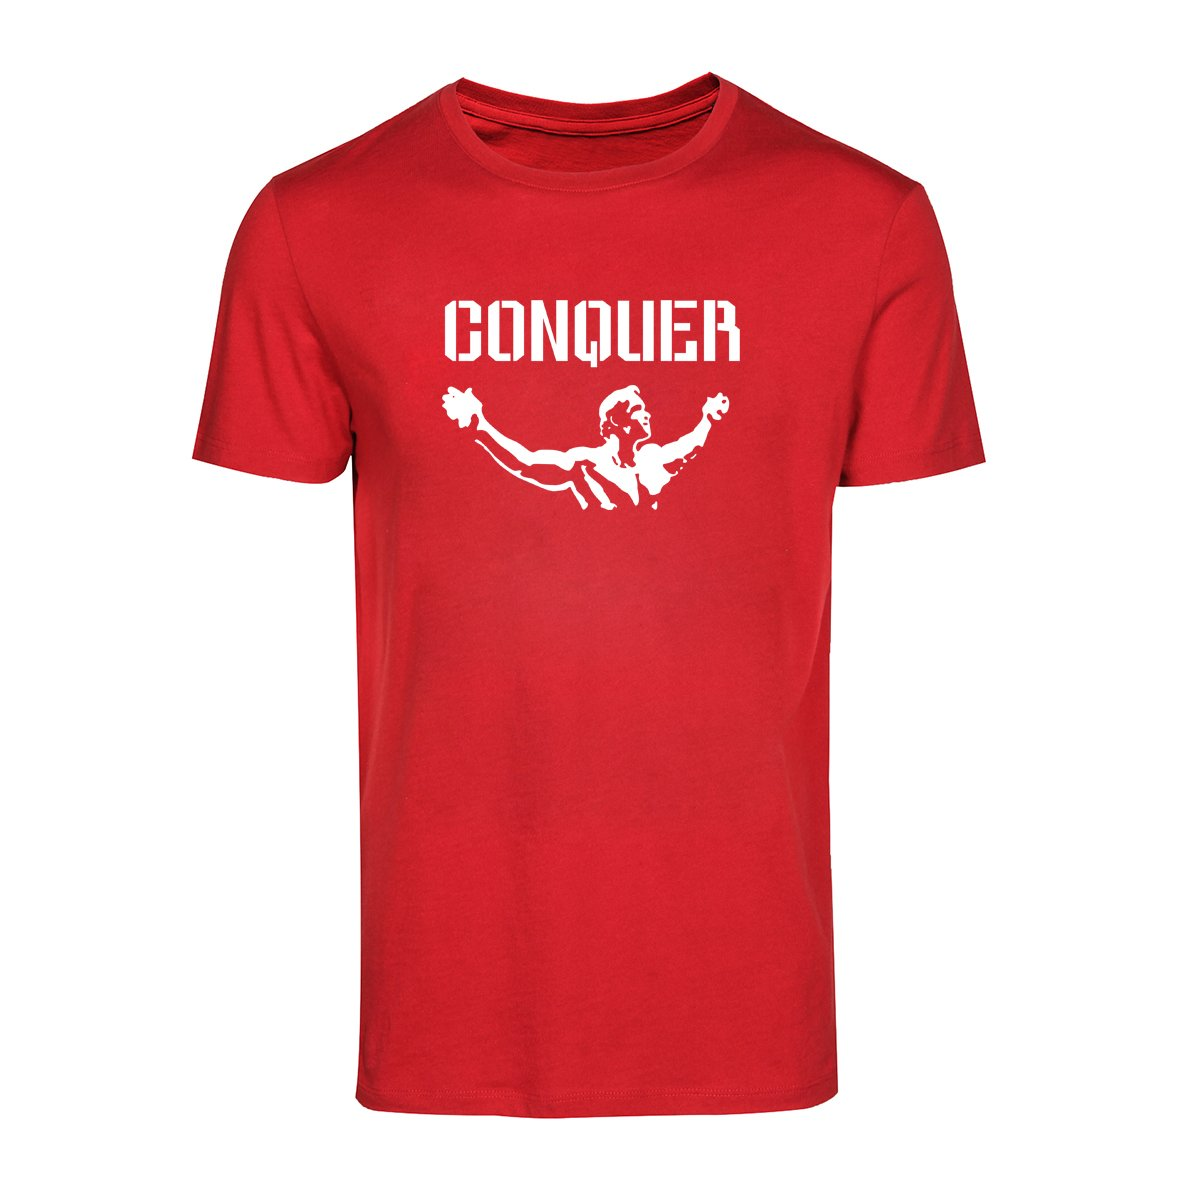 Loo Show Conquer Casual Crew T Shirts Funny Tee